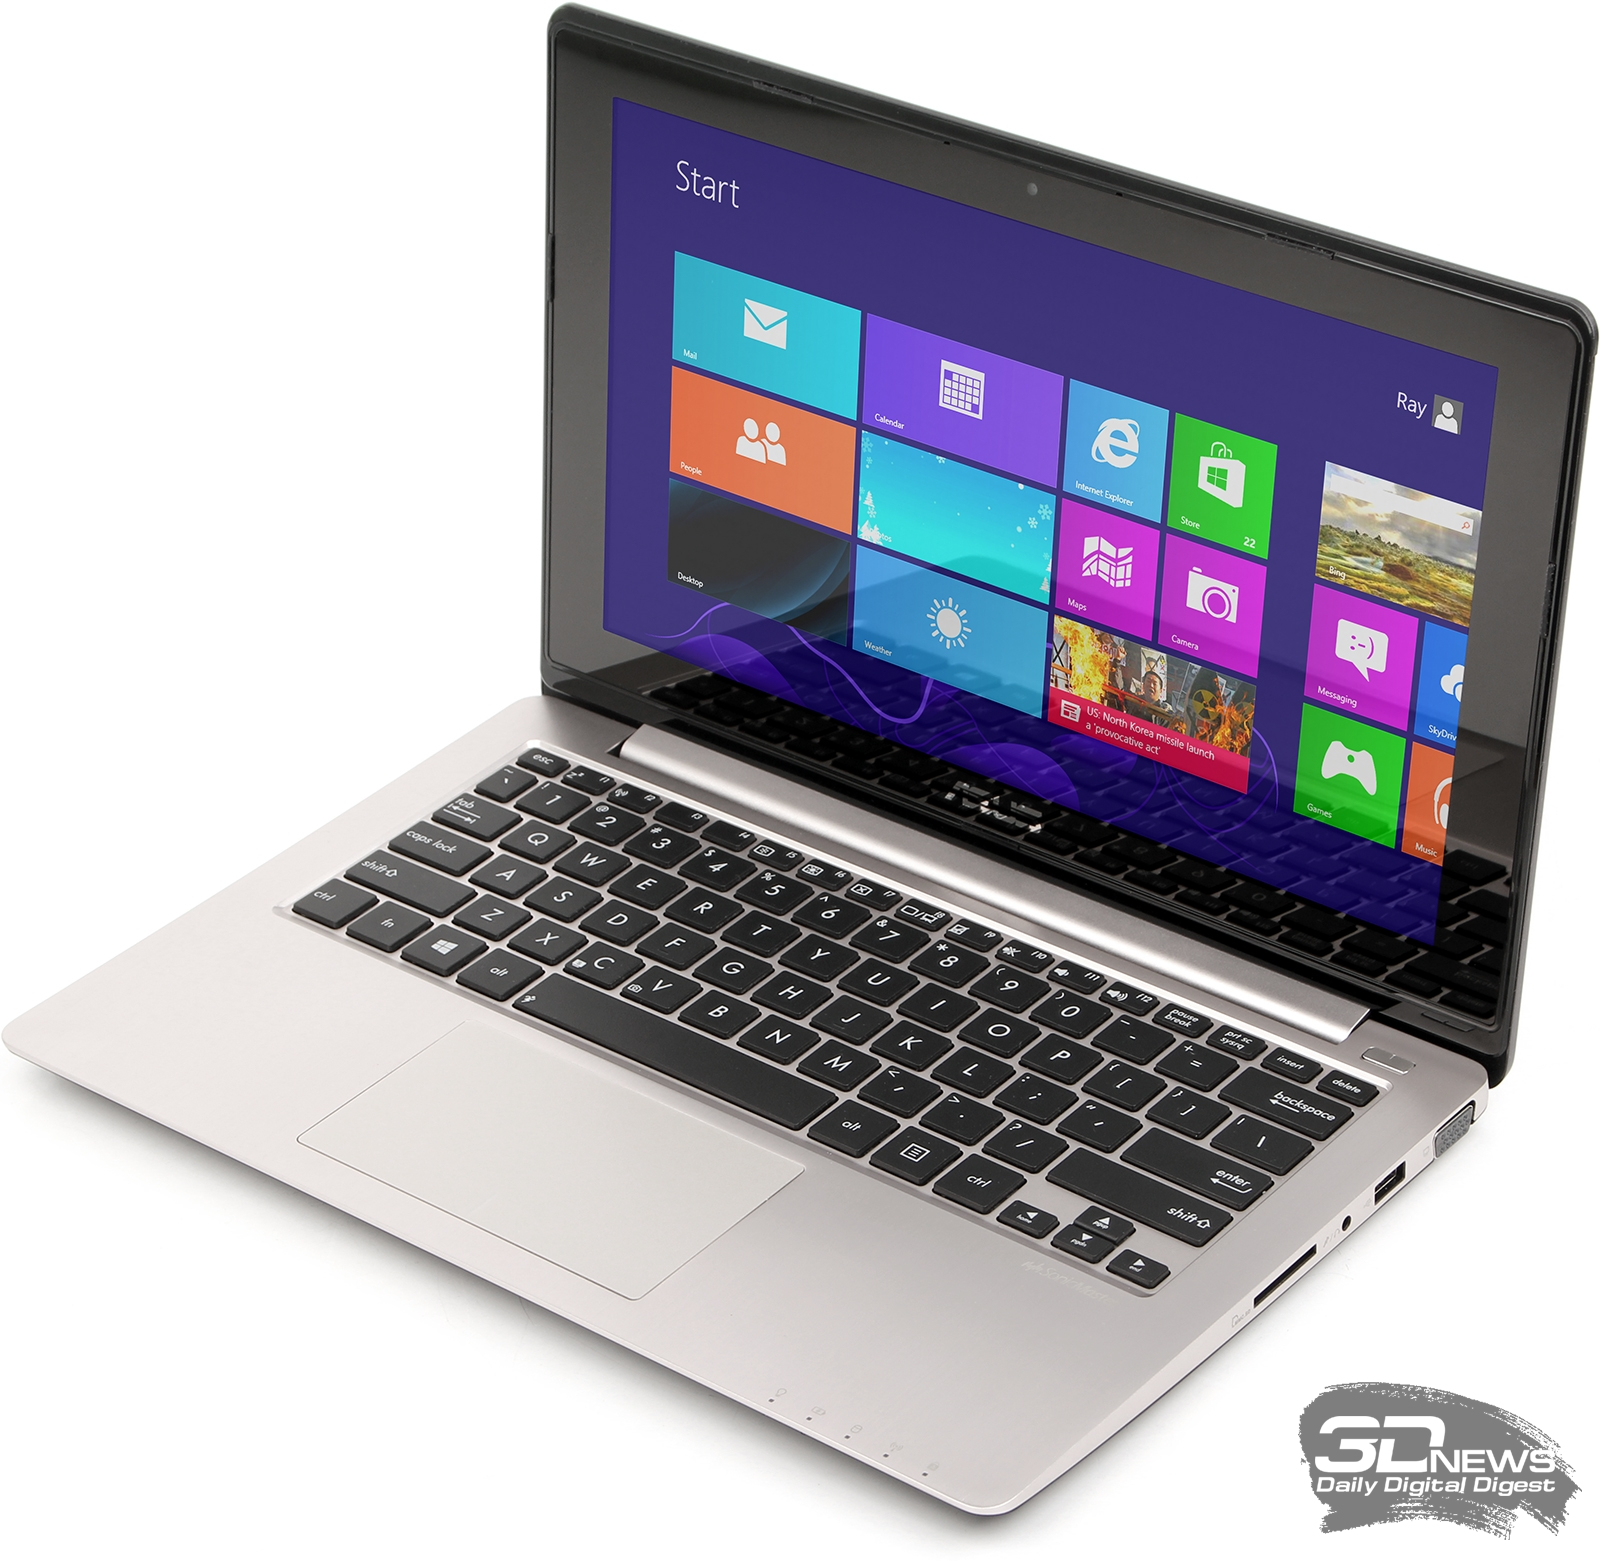 ASUS VIVOBOOK S200E WIRELESS RADIO CONTROL DRIVERS UPDATE